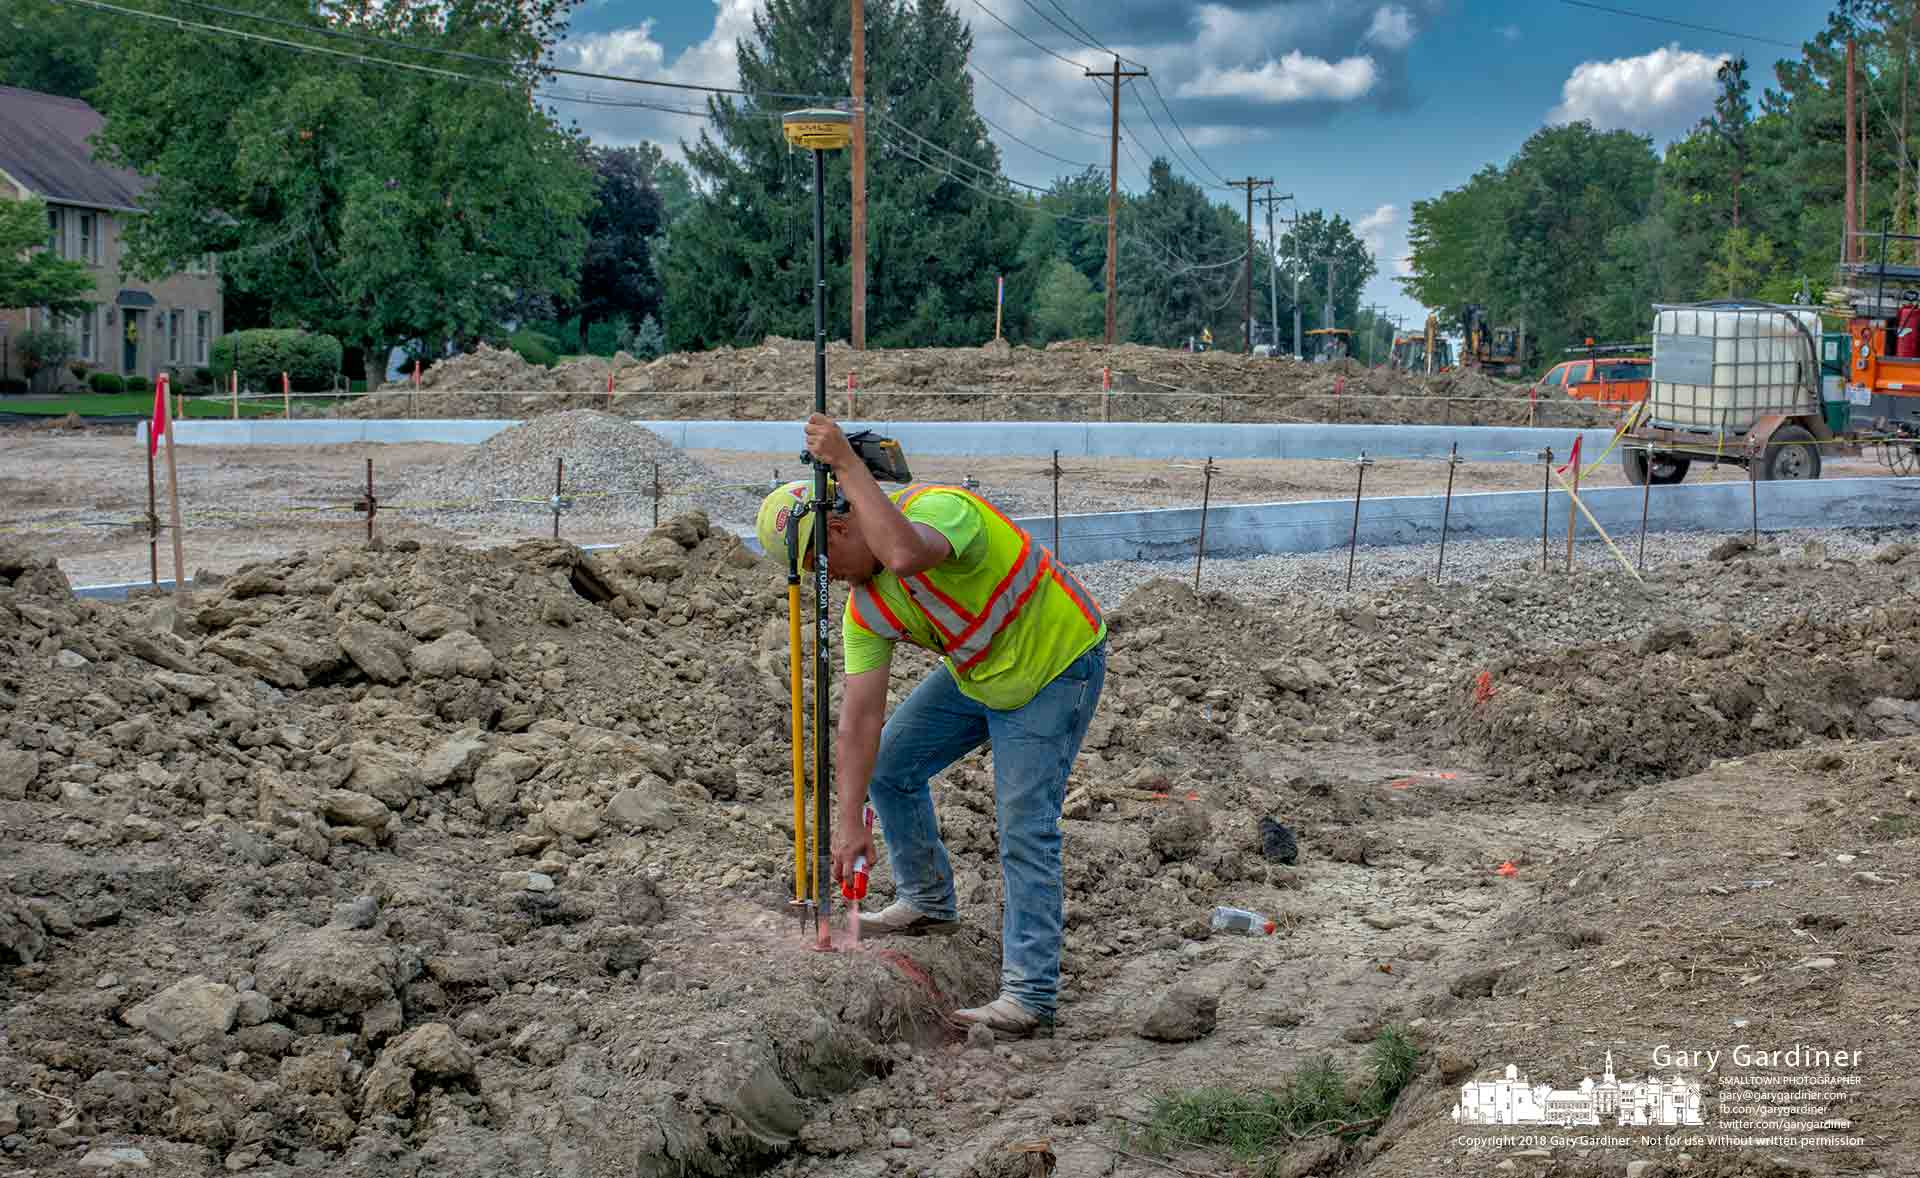 A surveyor marks a spot as he checks elevation and location along the right-of-way for the round-a-bout being built at Smothers and Schott Roads. My Final Photo for Aug. 28, 2018.